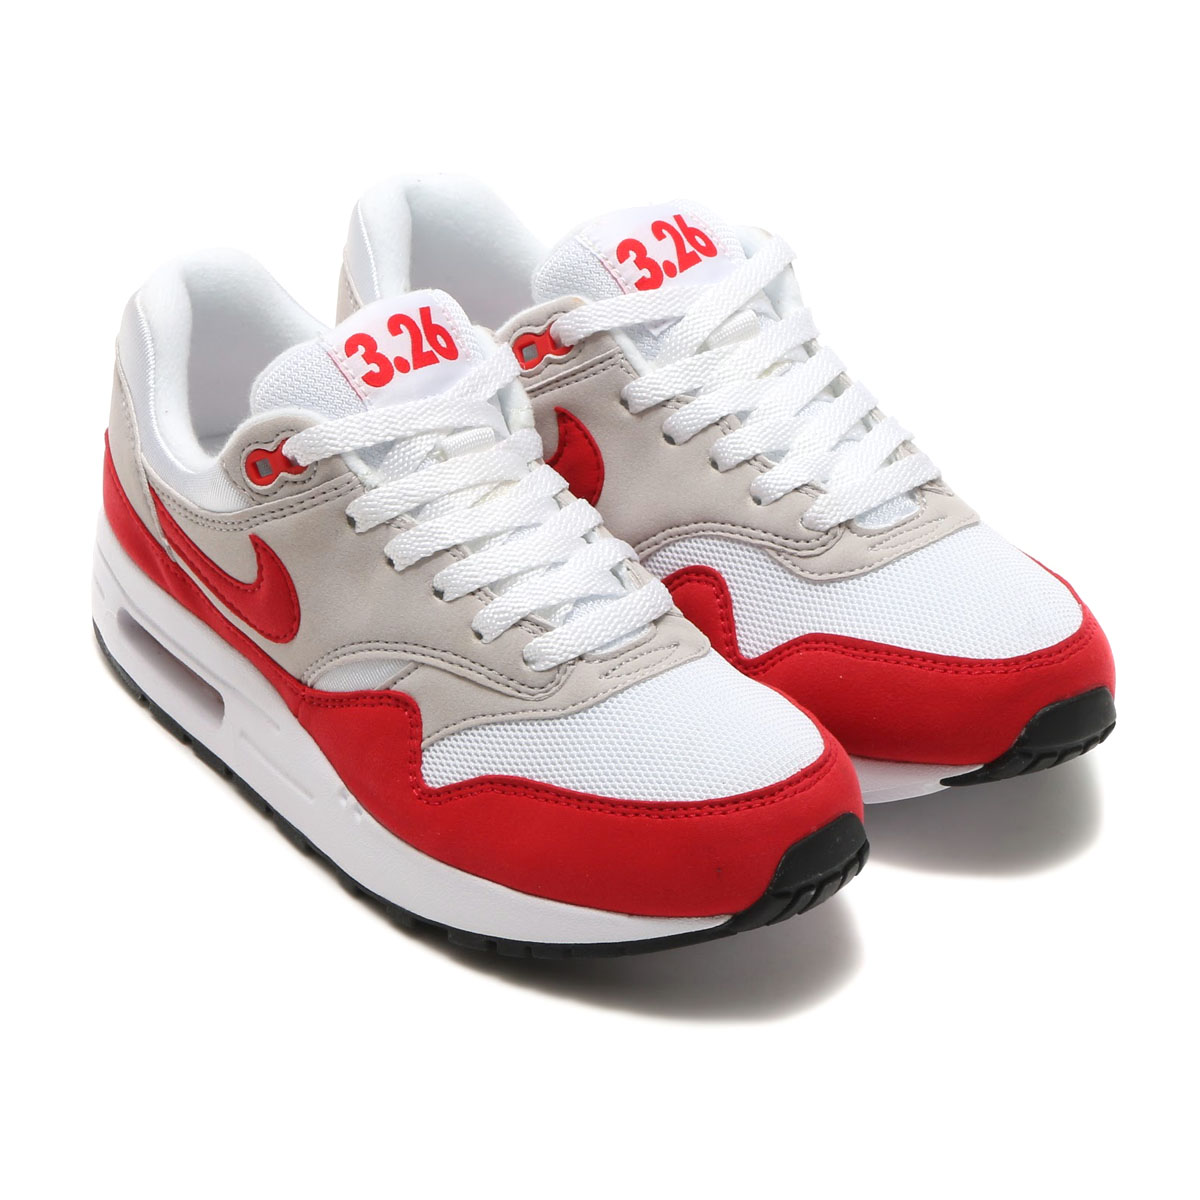 on sale 63234 6b43c NIKEAIRMAX1QS(GS)(ナイキエアマックス1QSGS)WHITE UNIVERSITYRED-NEUTRALGREY-BLACK